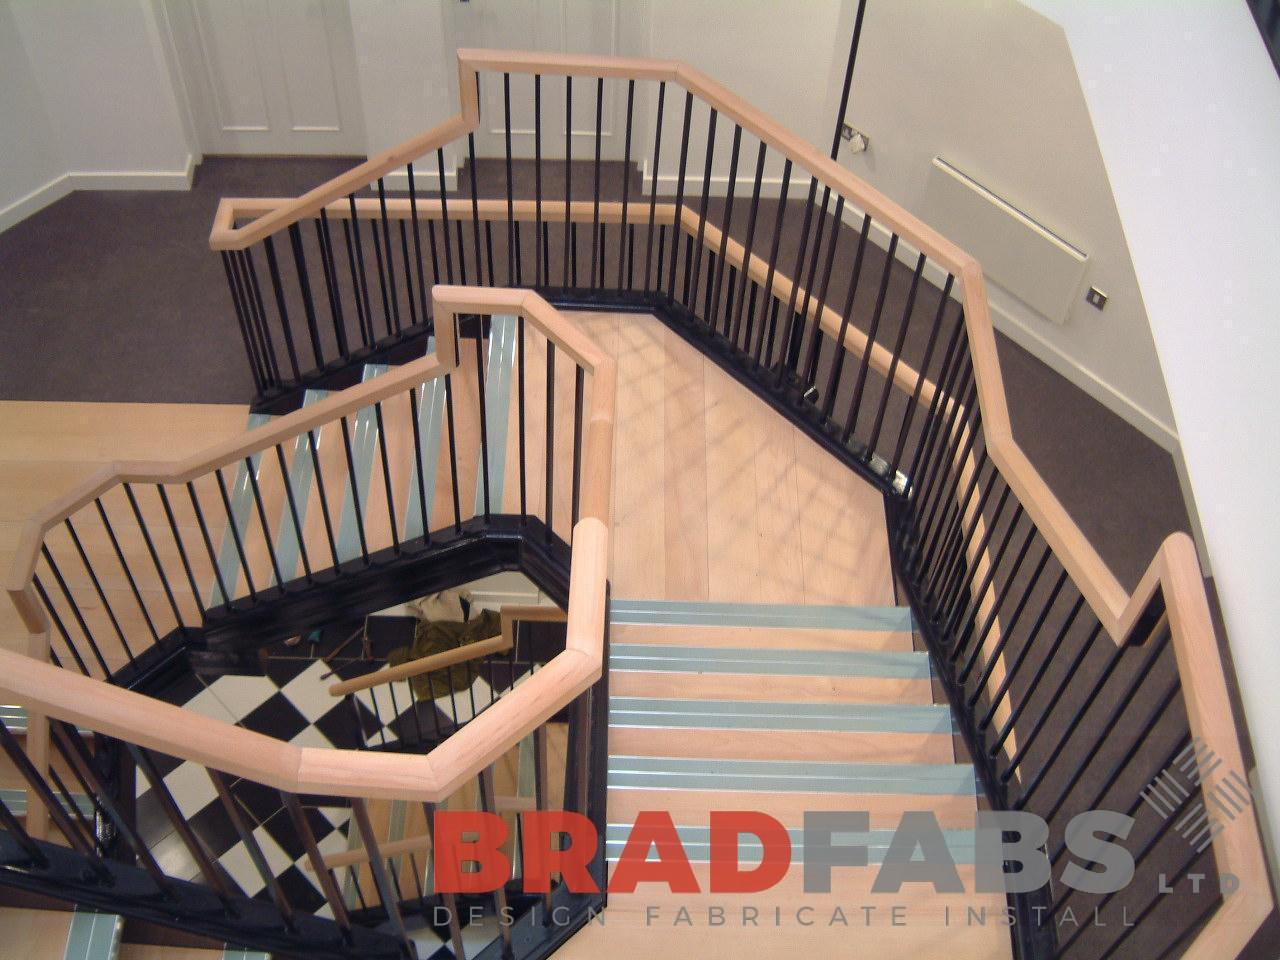 Bespoke Designs with Bradfabs